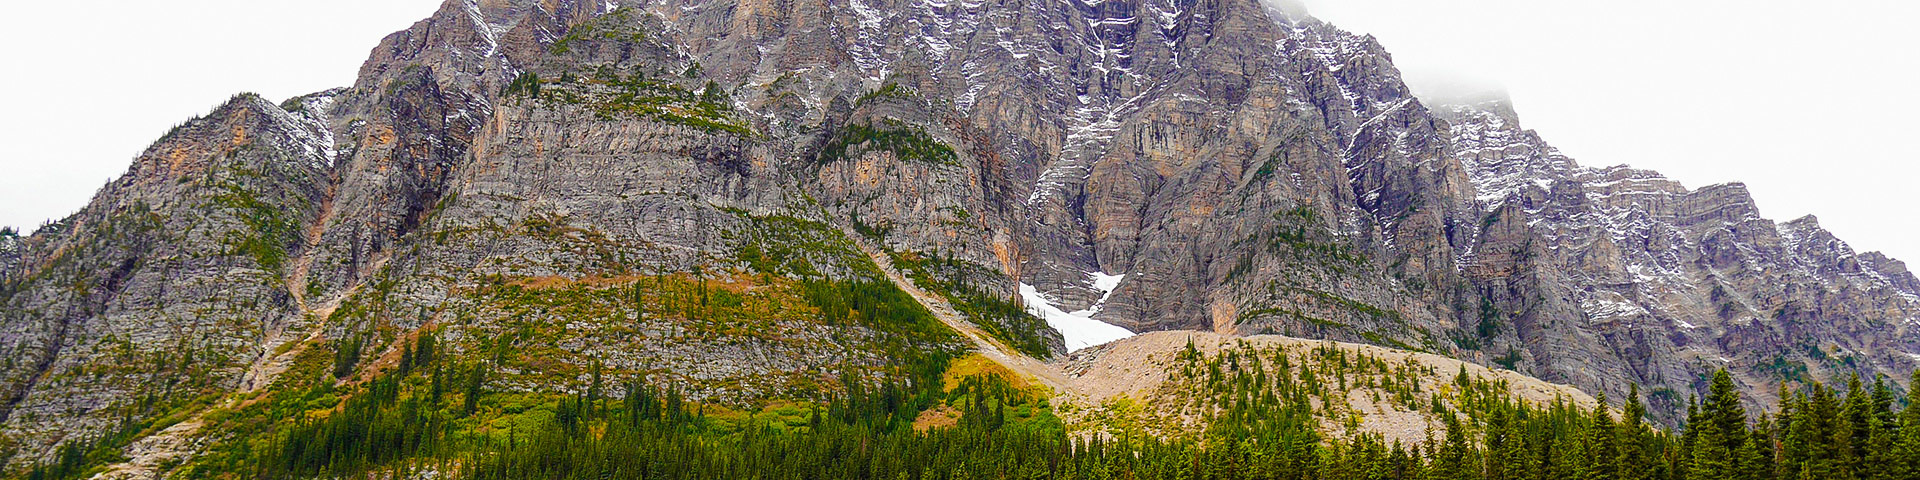 Panorama from the Cirque & Chephren Lakes hike along Icefields Parkway, the Canadian Rockies